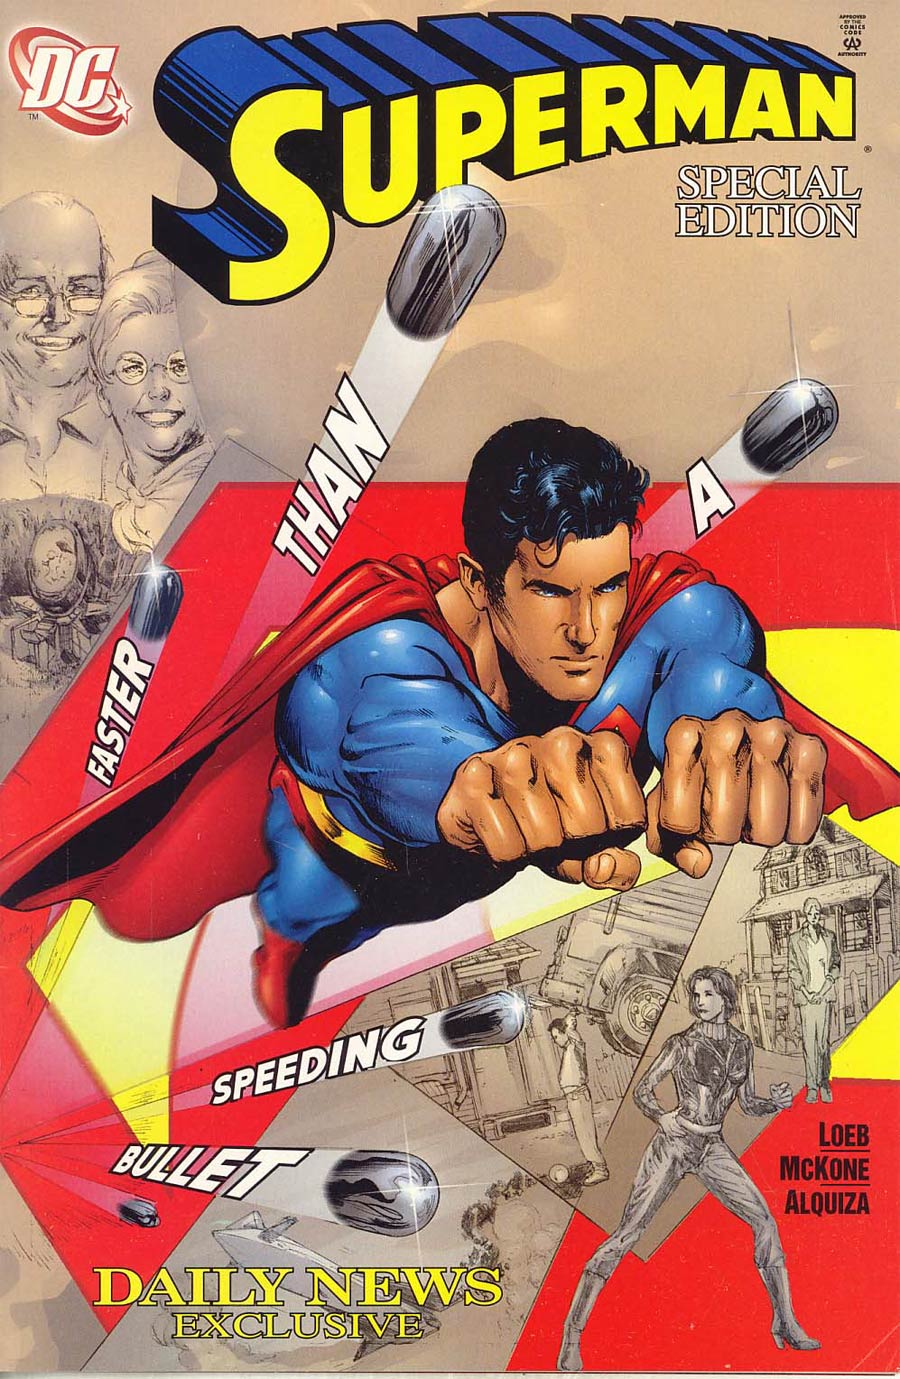 Superman Vol 2 #151 Daily News Exclusive